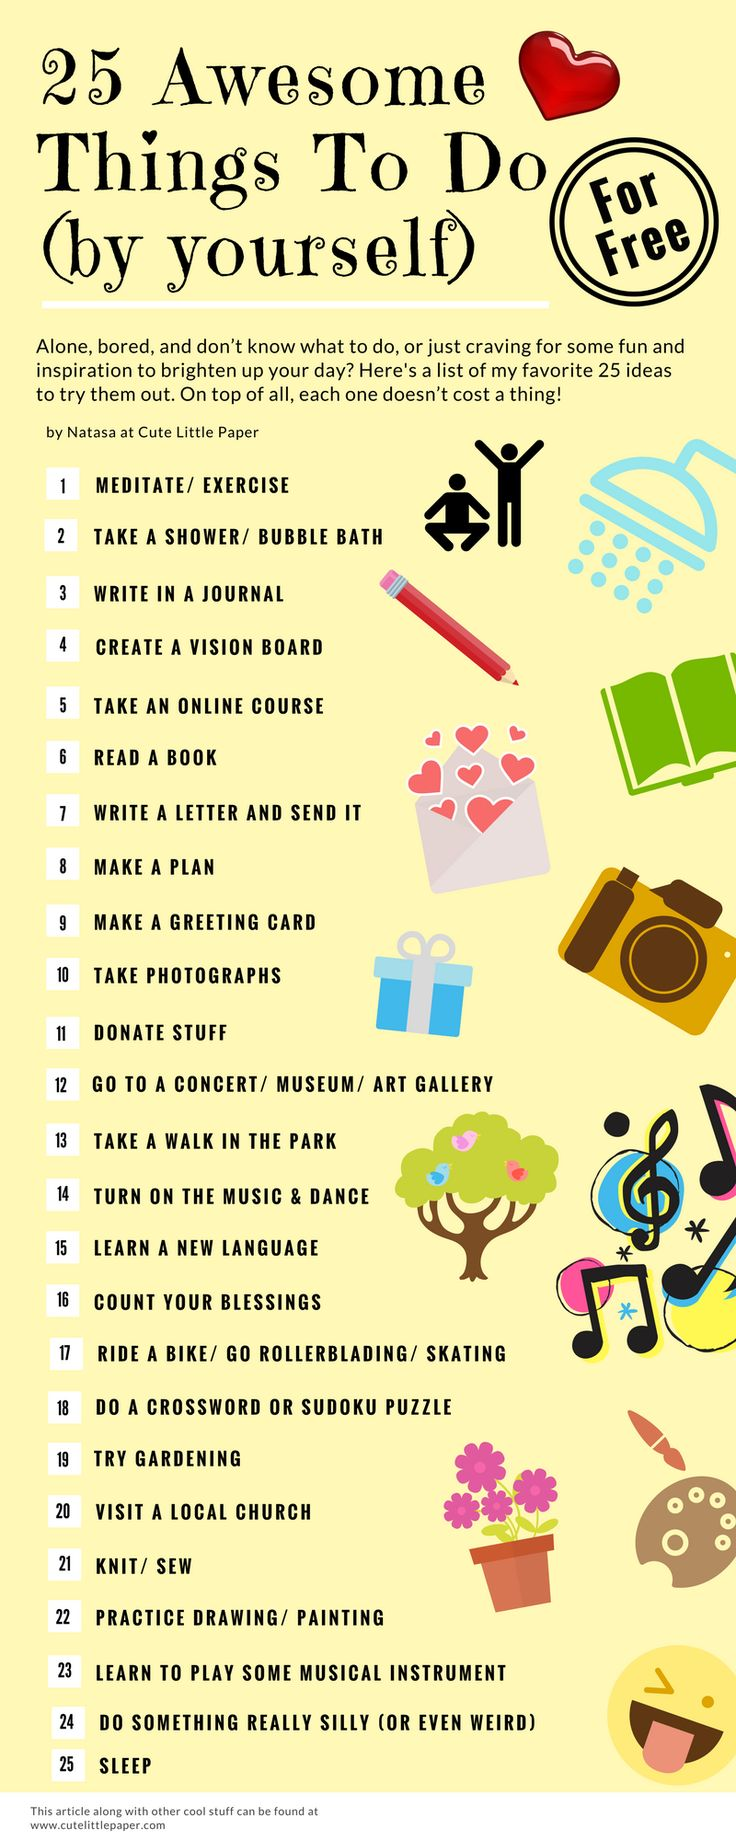 A list of 25 awesome things to do by yourself -for FREE! www.cutelittlepaper.com